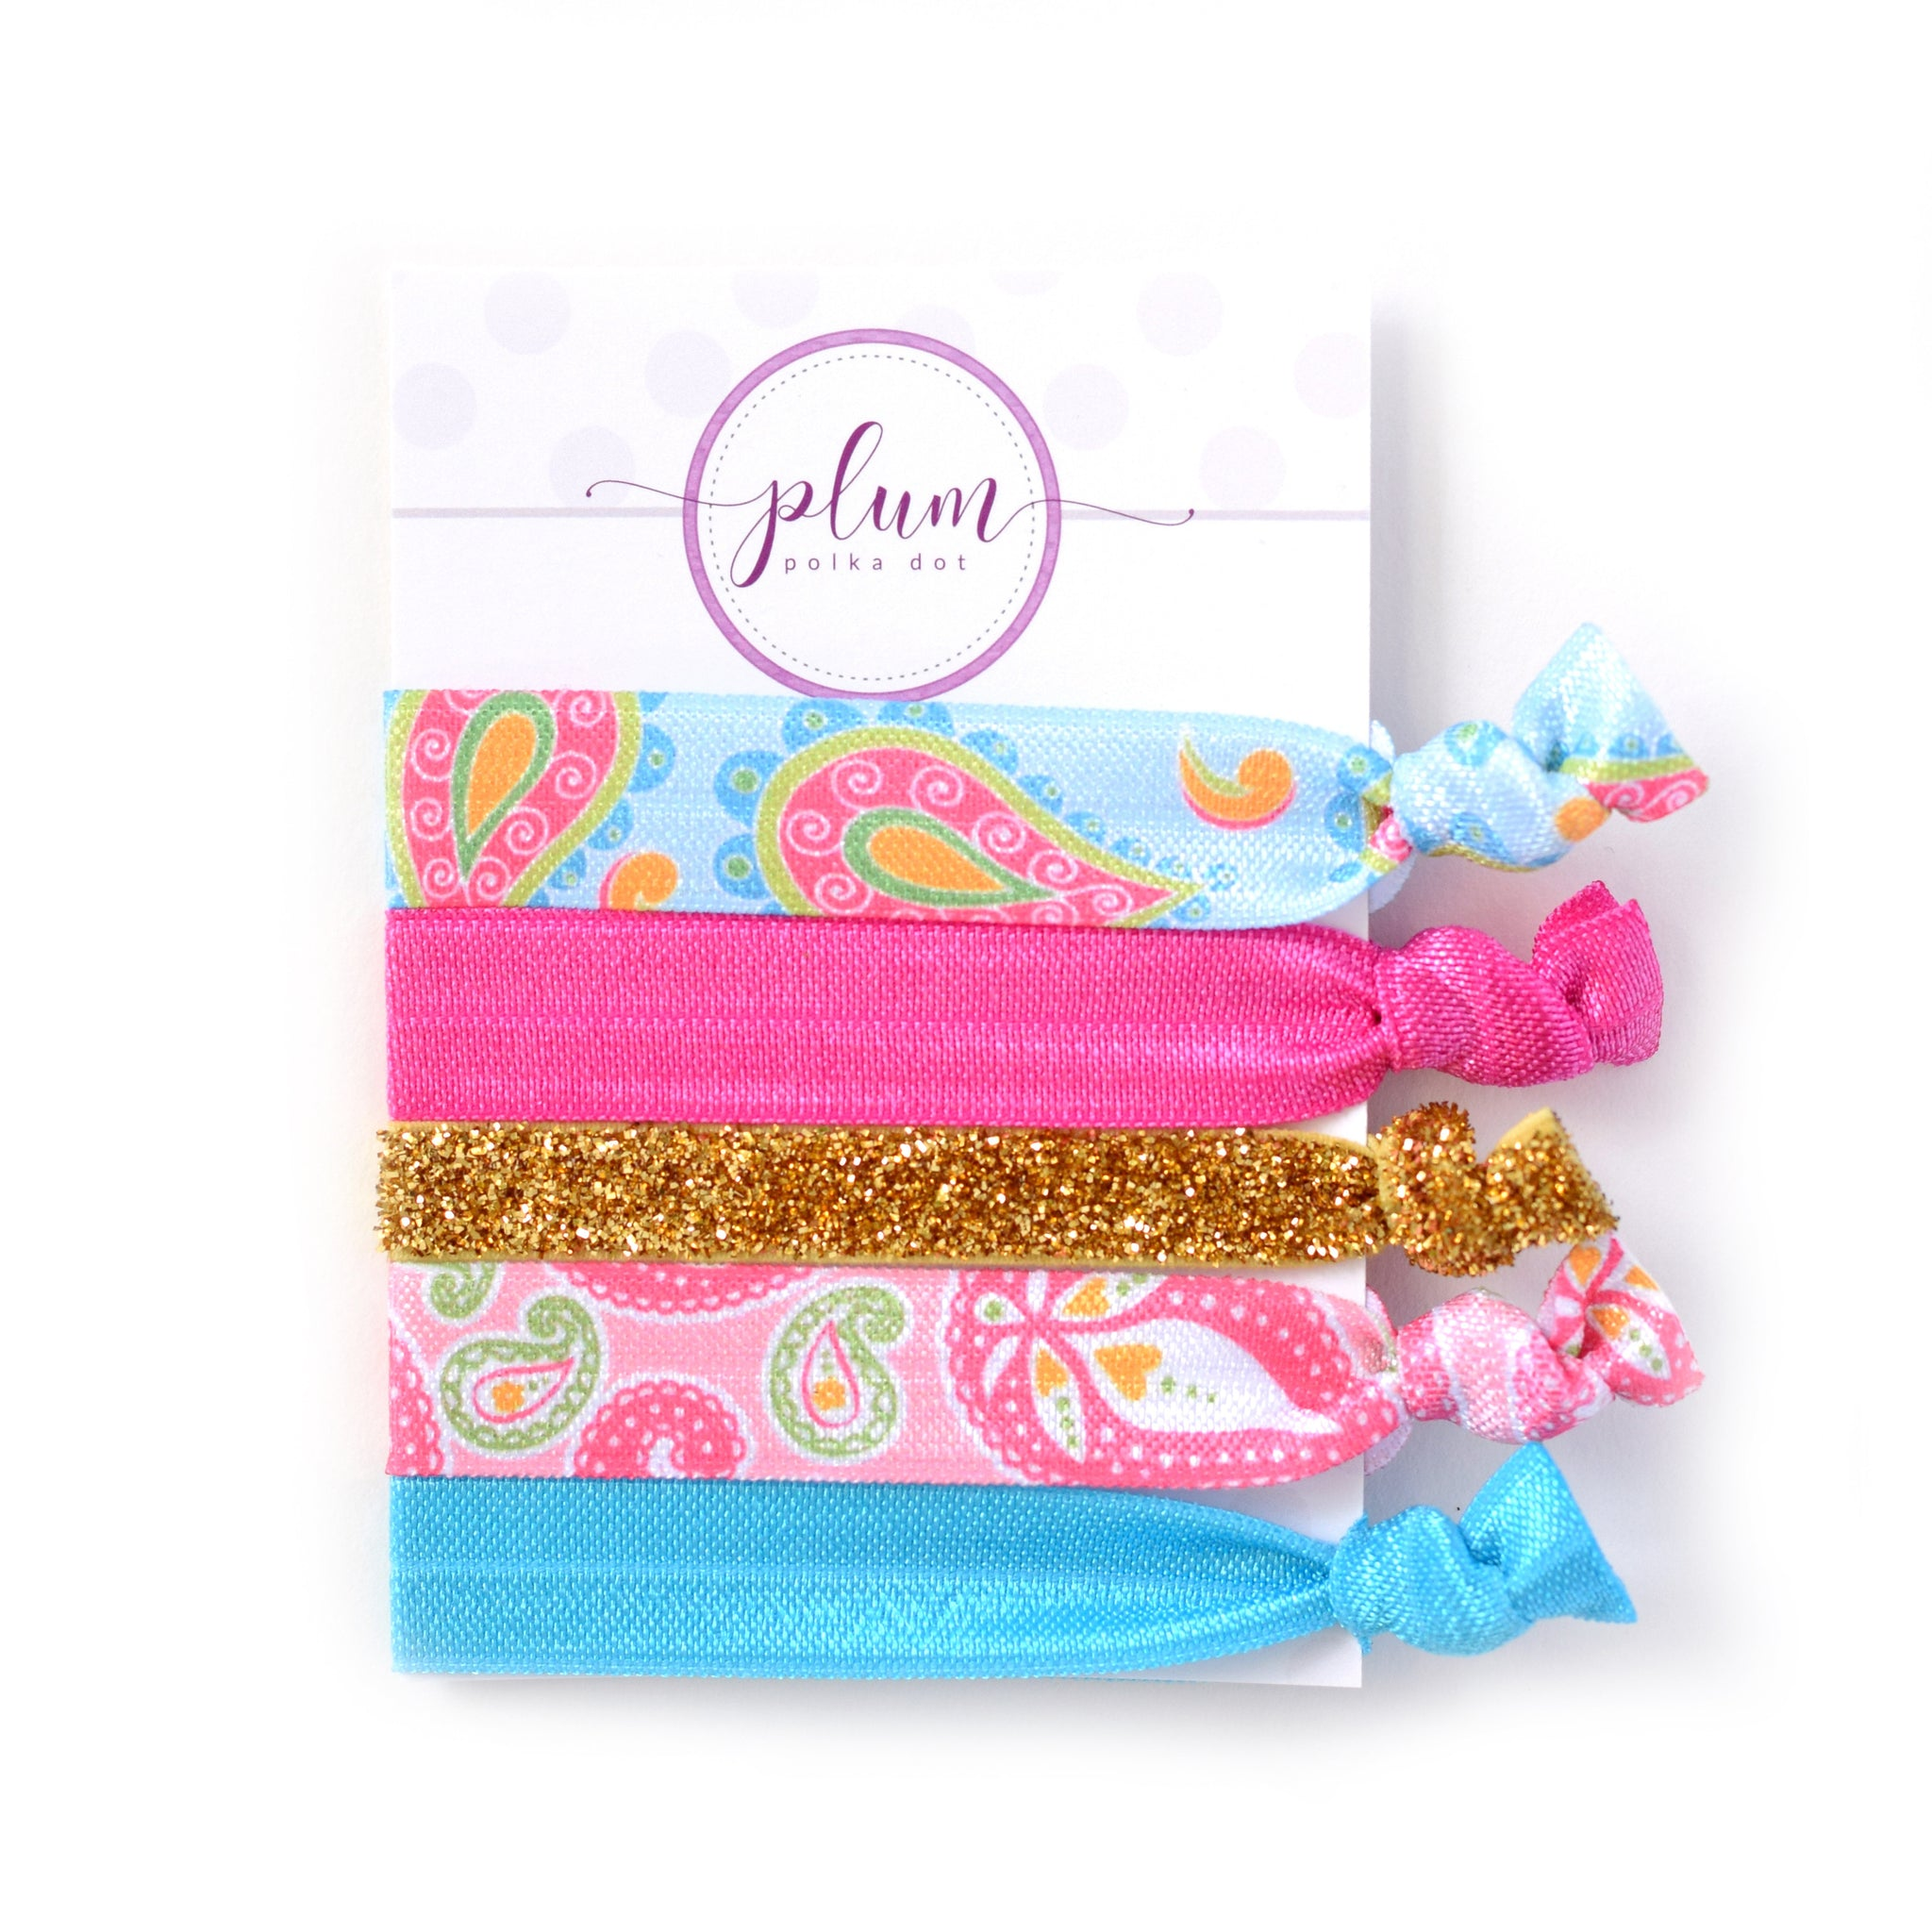 Paisley Hair Ties - Set of 5 - @PlumPolkaDot